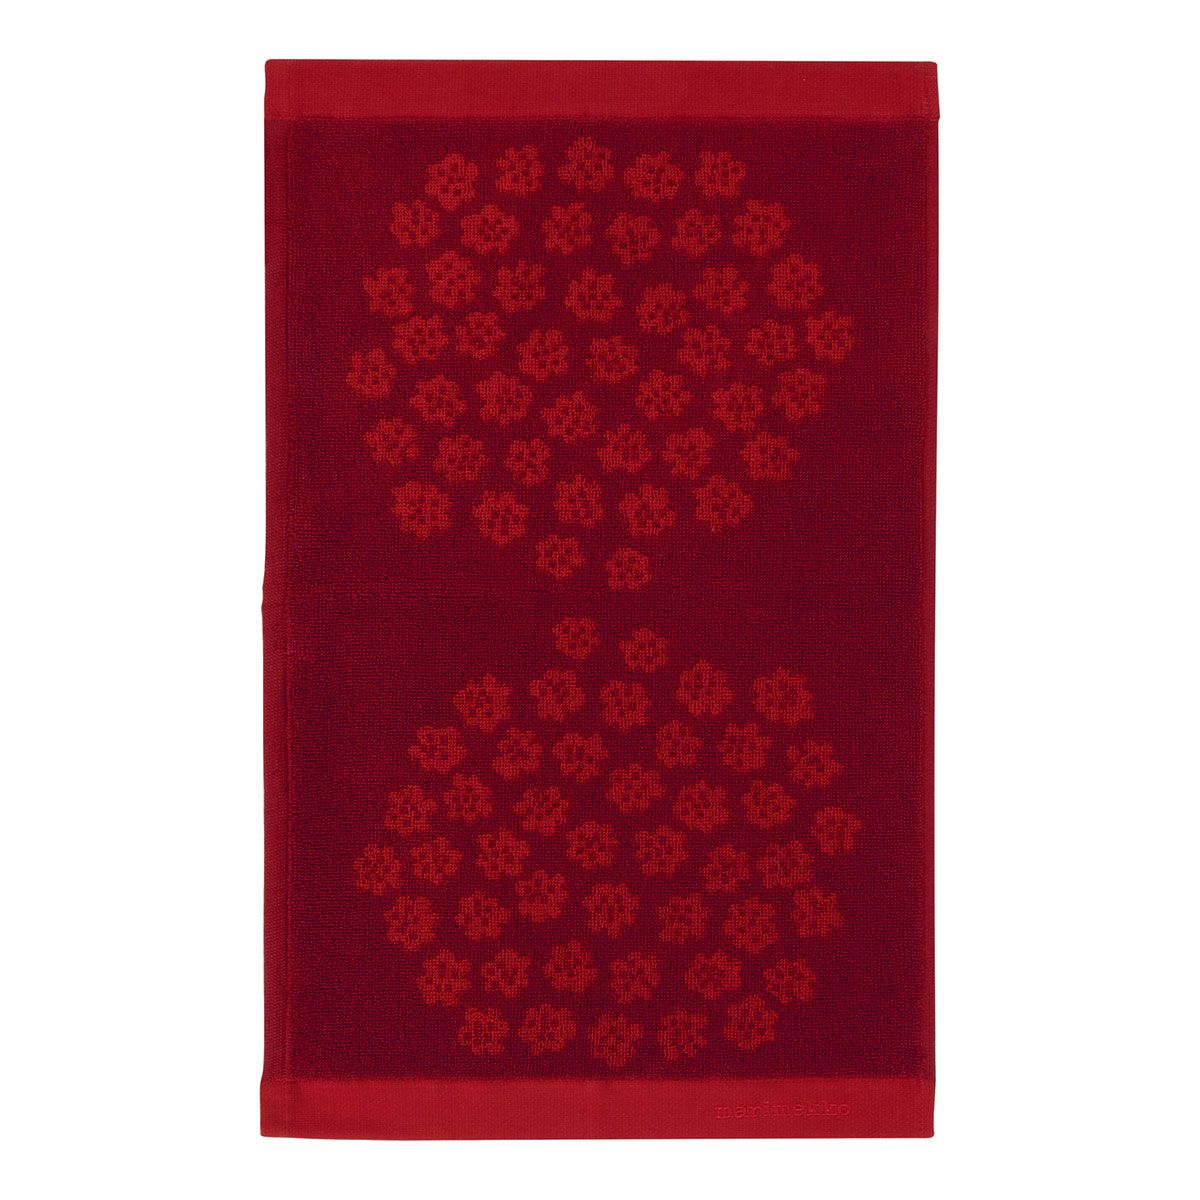 Puketti guest towel 30x50cm red/dark red